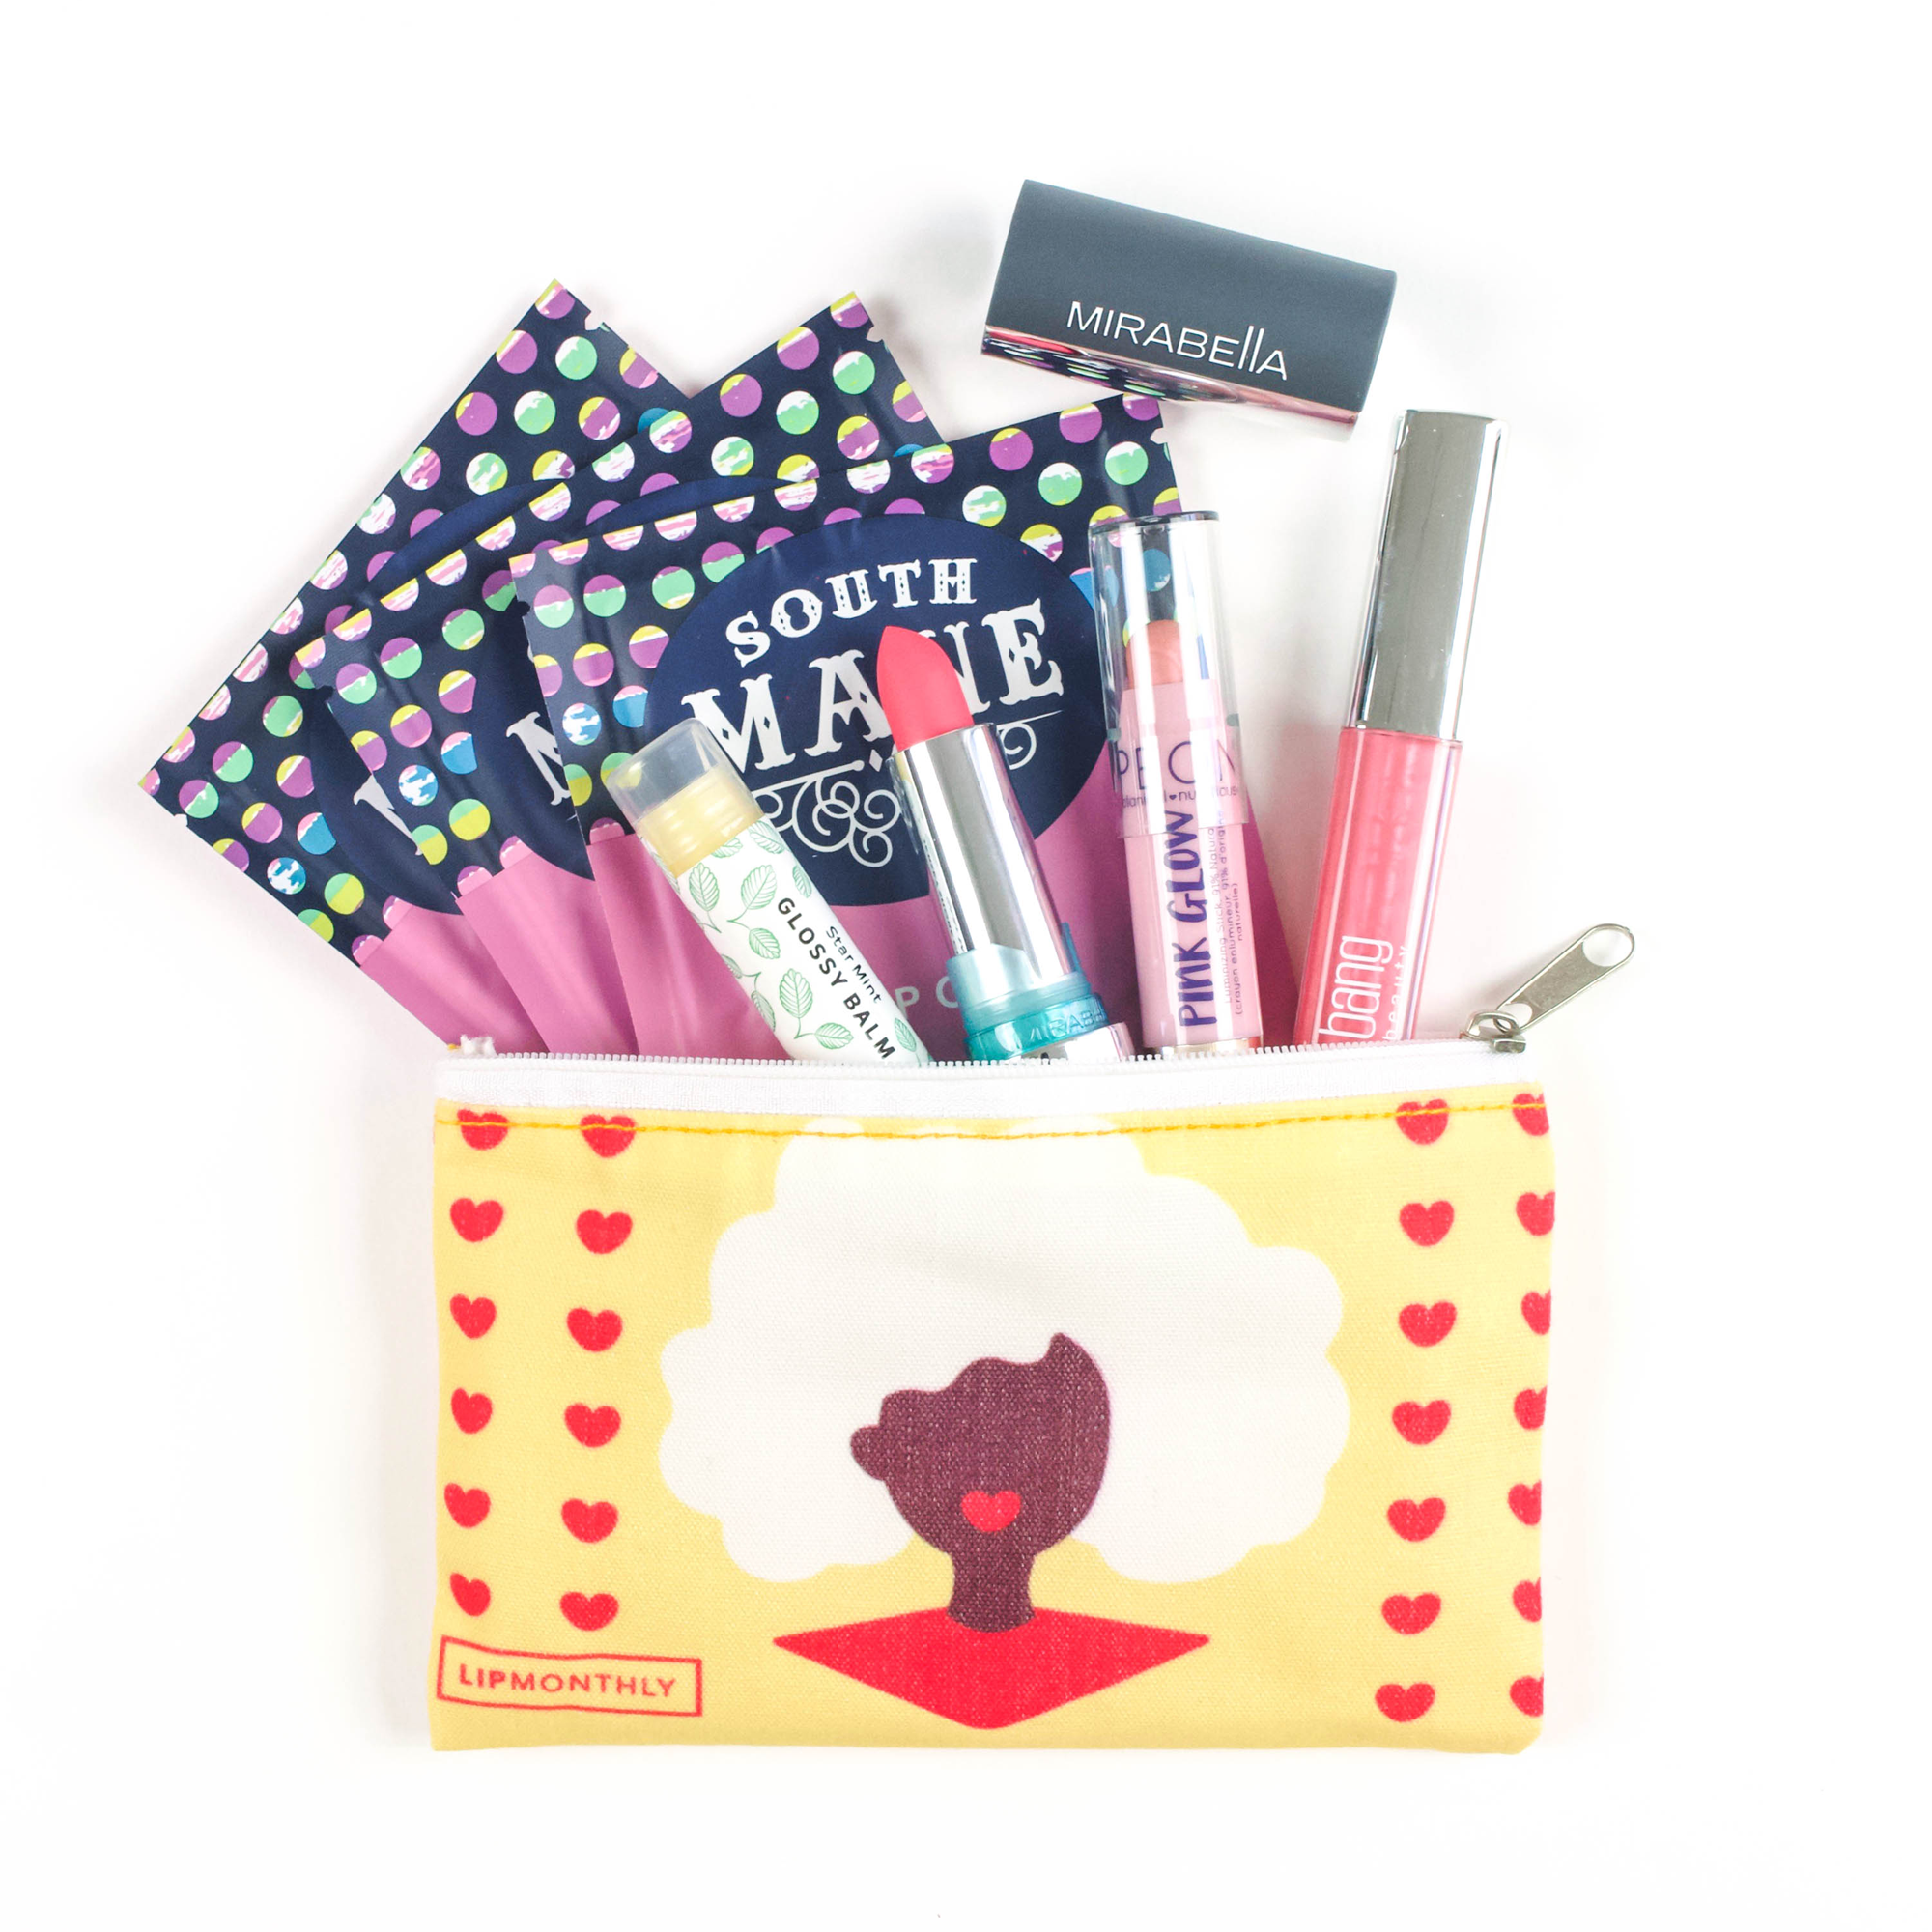 Lip Monthly - Beauty and Makeup Subscription Box